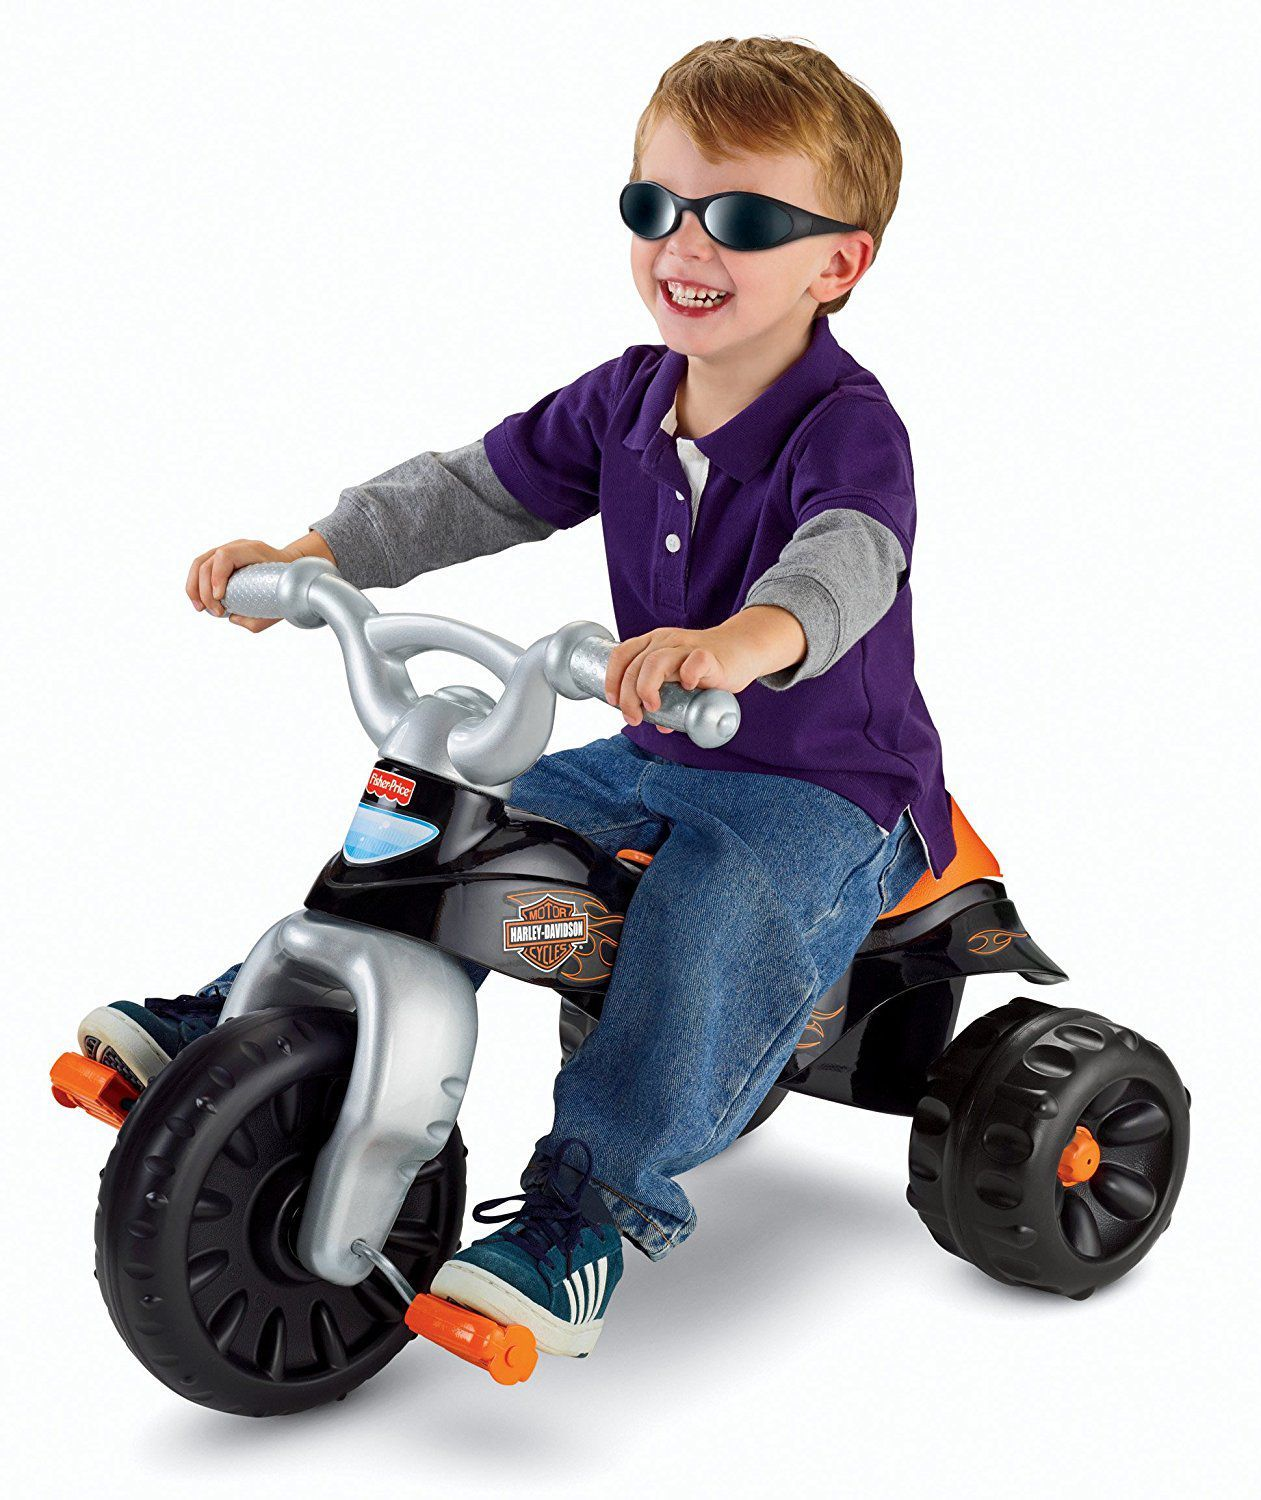 The 23 Best Toys For 2 Year Old Boys In 2020 Kids Trike Classic Harley Davidson Harley Davidson Trike